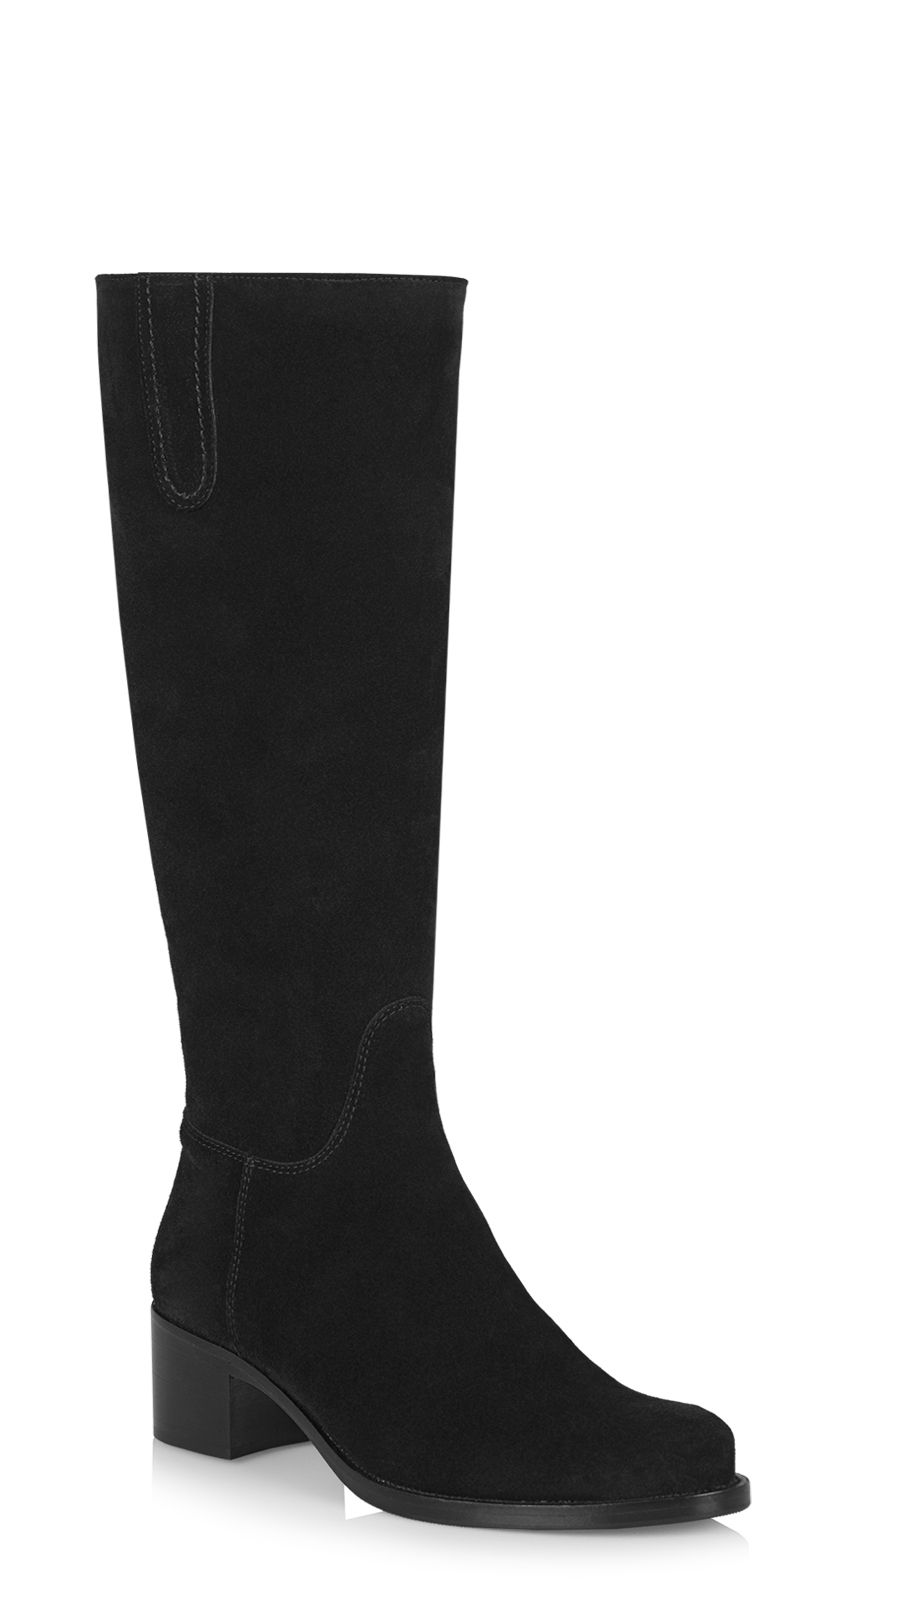 21a6f3abe La Canadienne Official Site | Free Shipping Suede - Boots - Polly - Black  Boots | La Canadienne USA Boutique